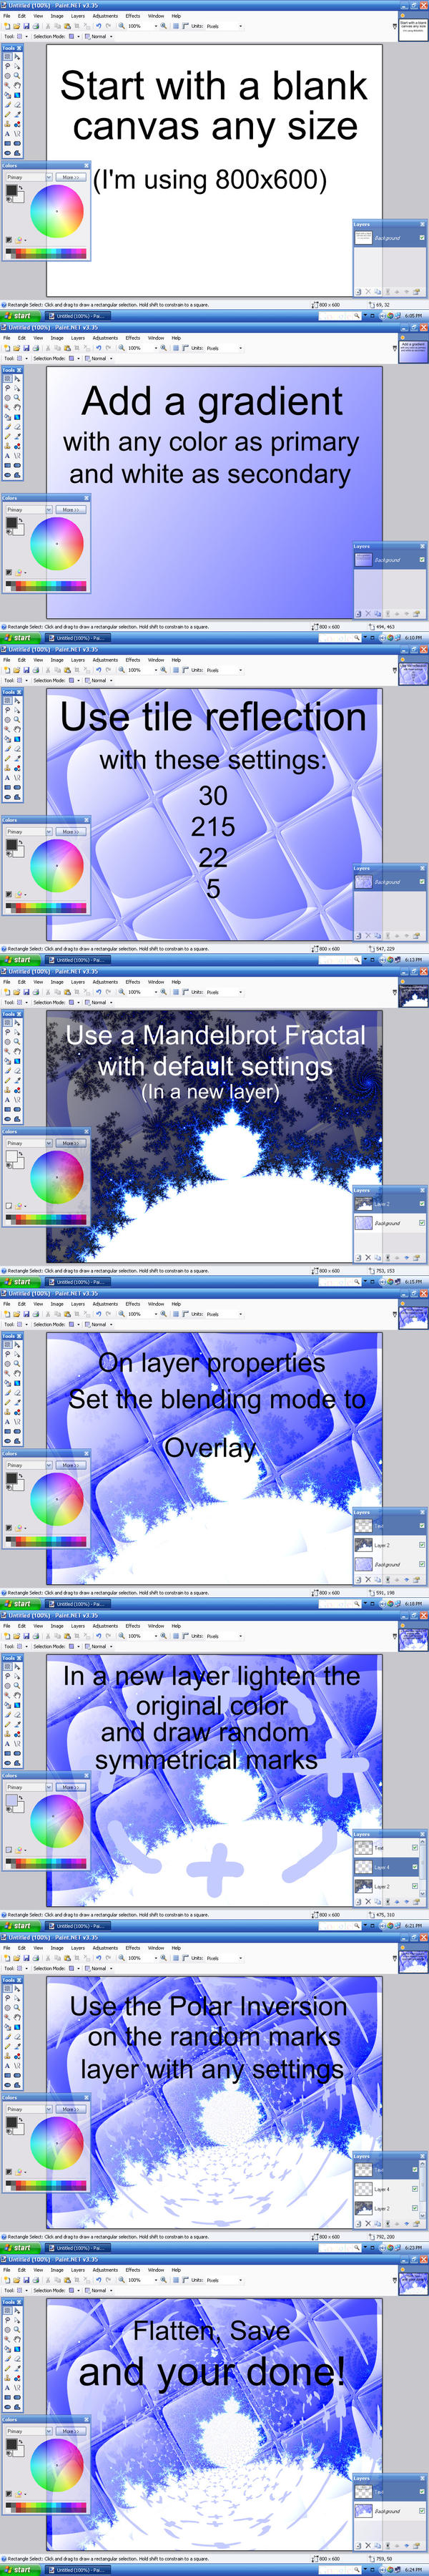 Icy Tiles Tutorial- Paint.NET by neonocean